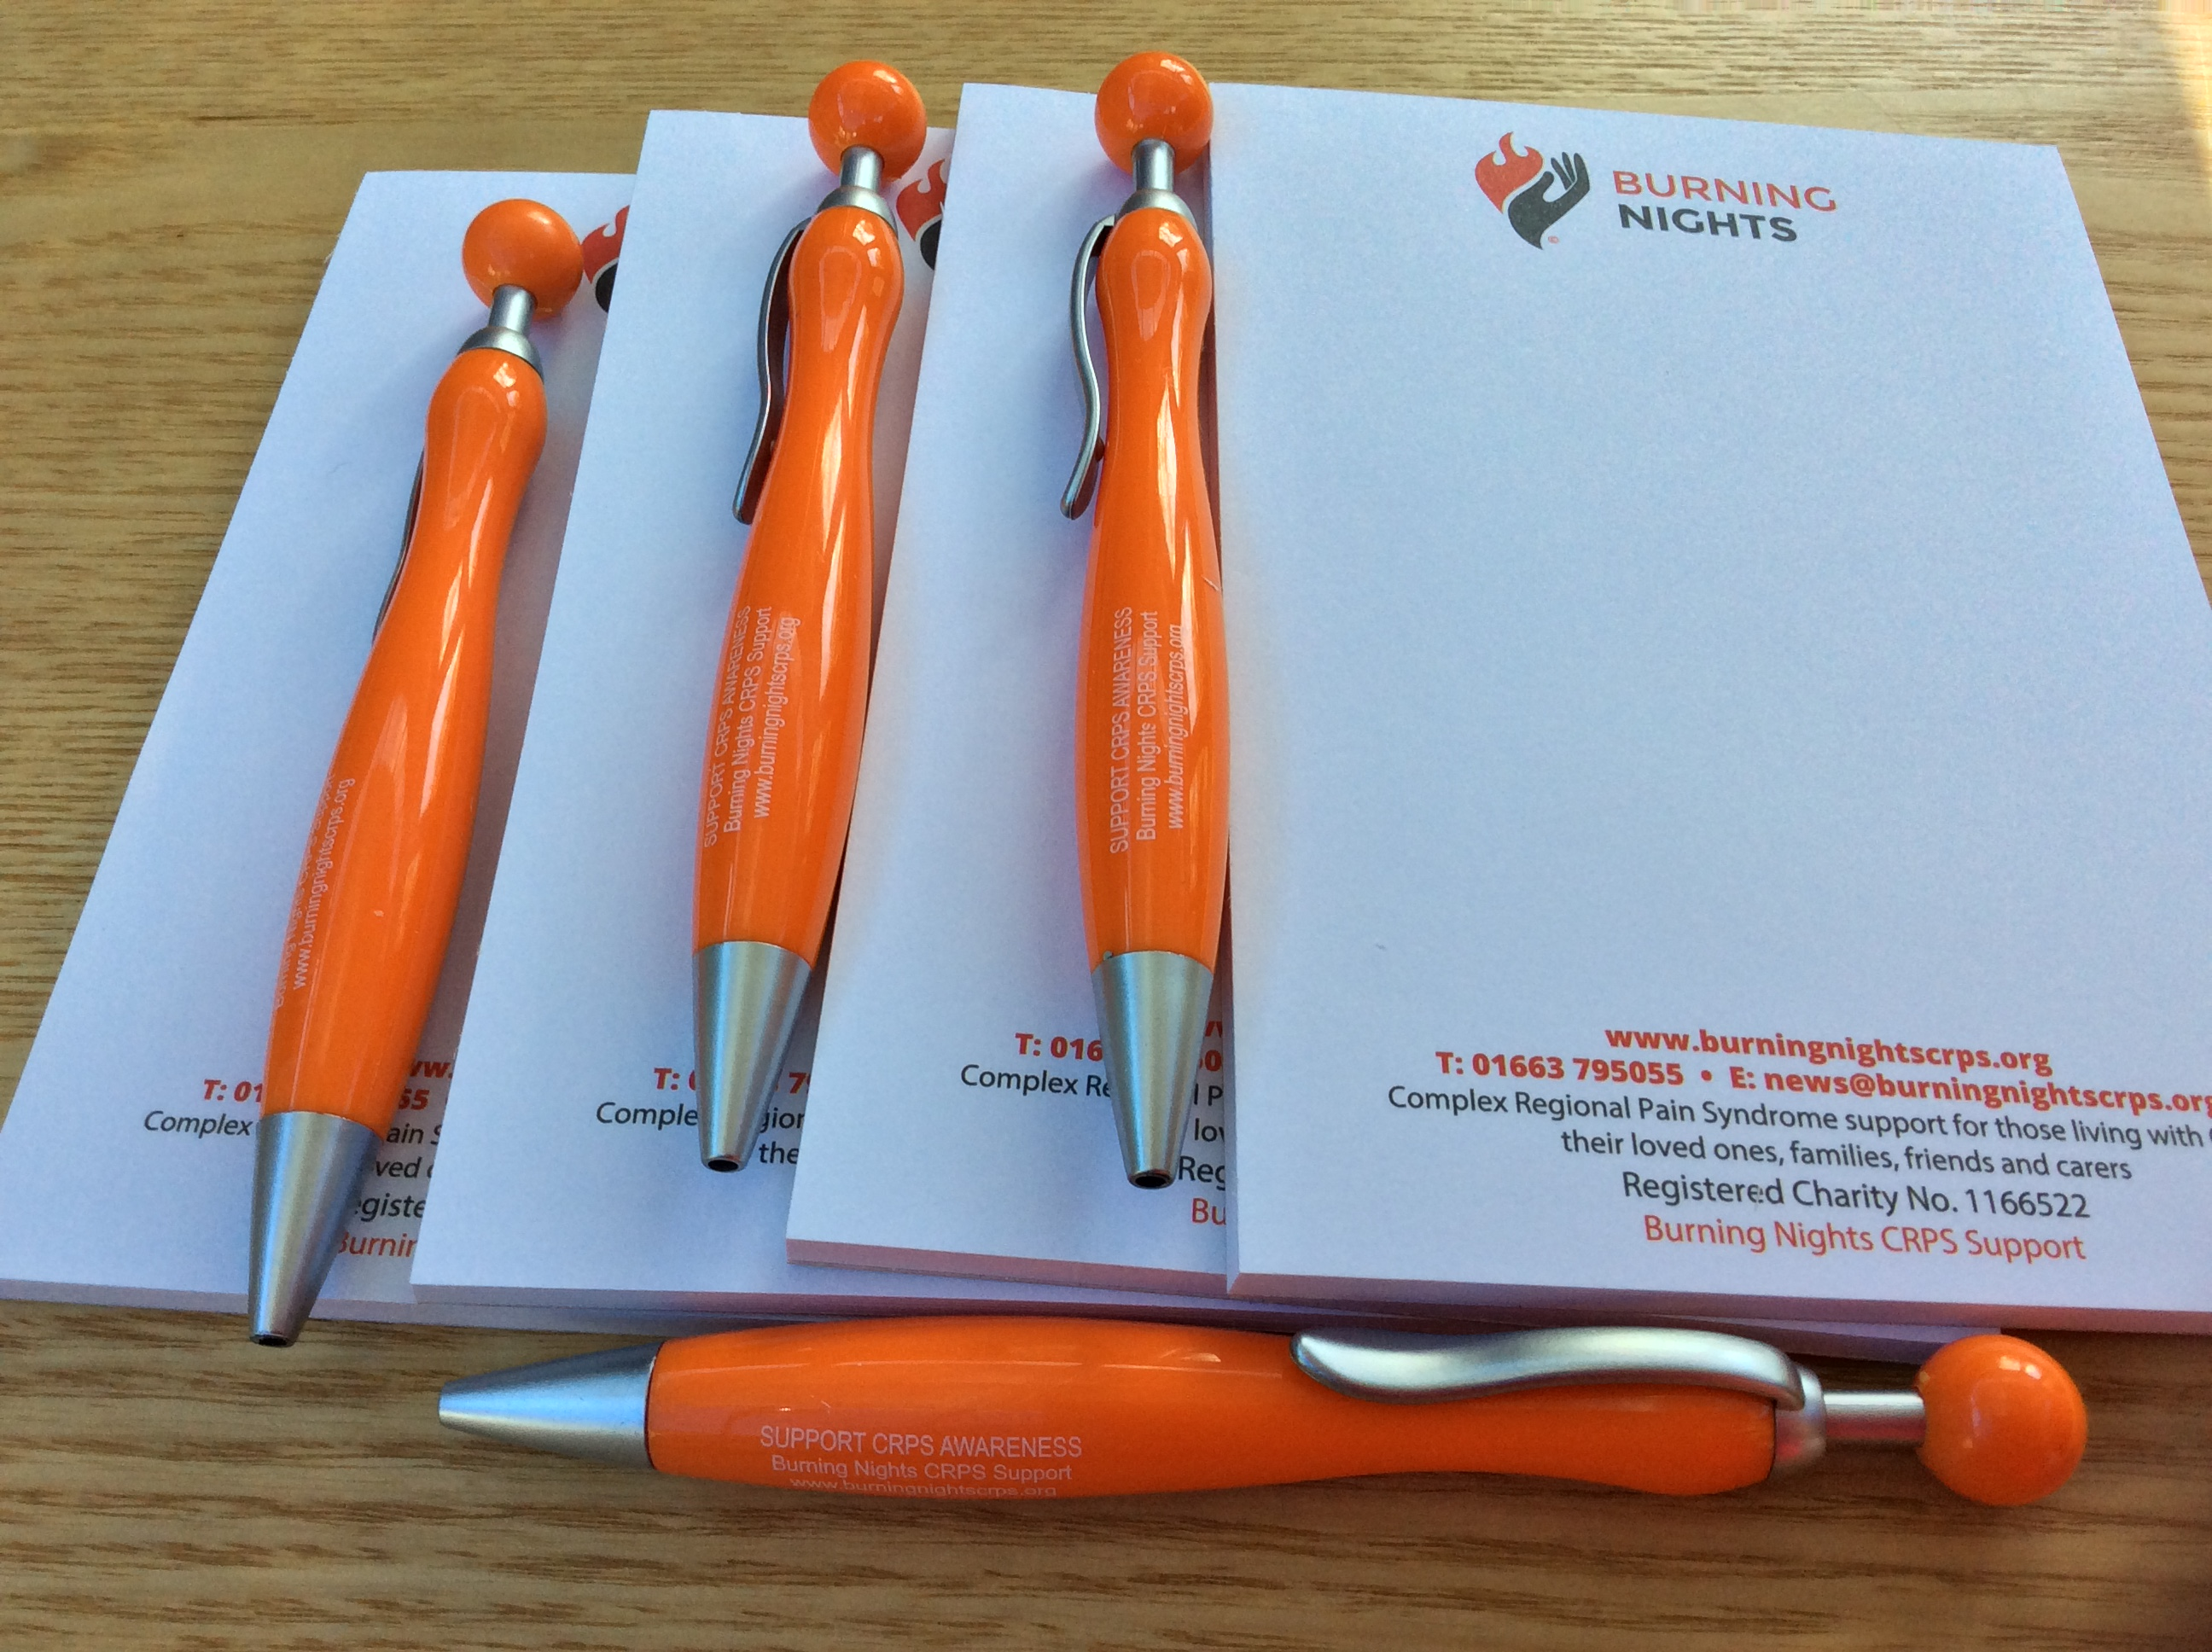 CRPS Support Notepad and Pen Set from Burning Nights CRPS Support charity